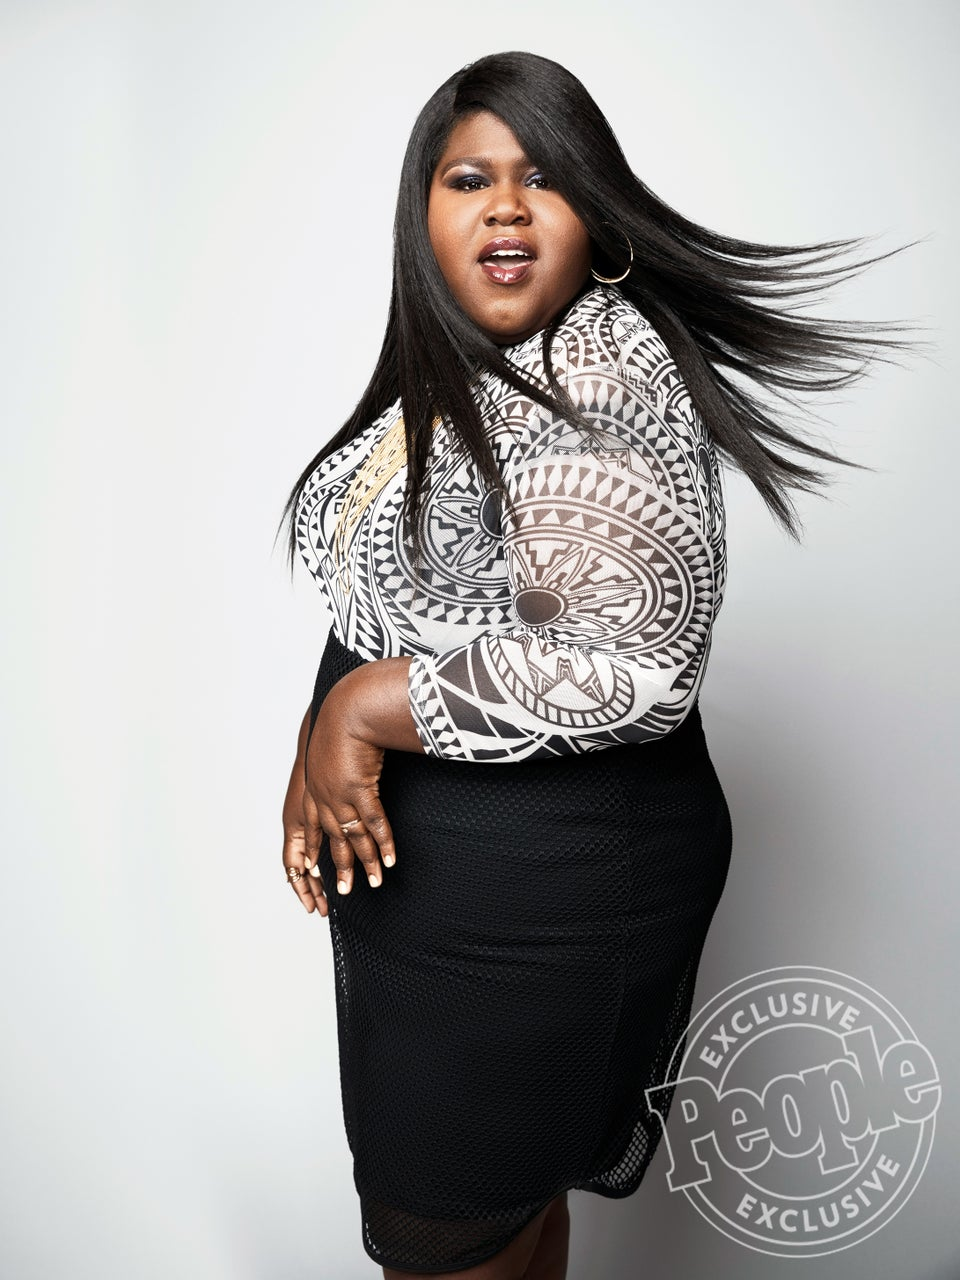 Gabourey Sidibe On Weight and Hollywood: 'In Most Of My Roles, Somebody Has To Make Mention Of It'